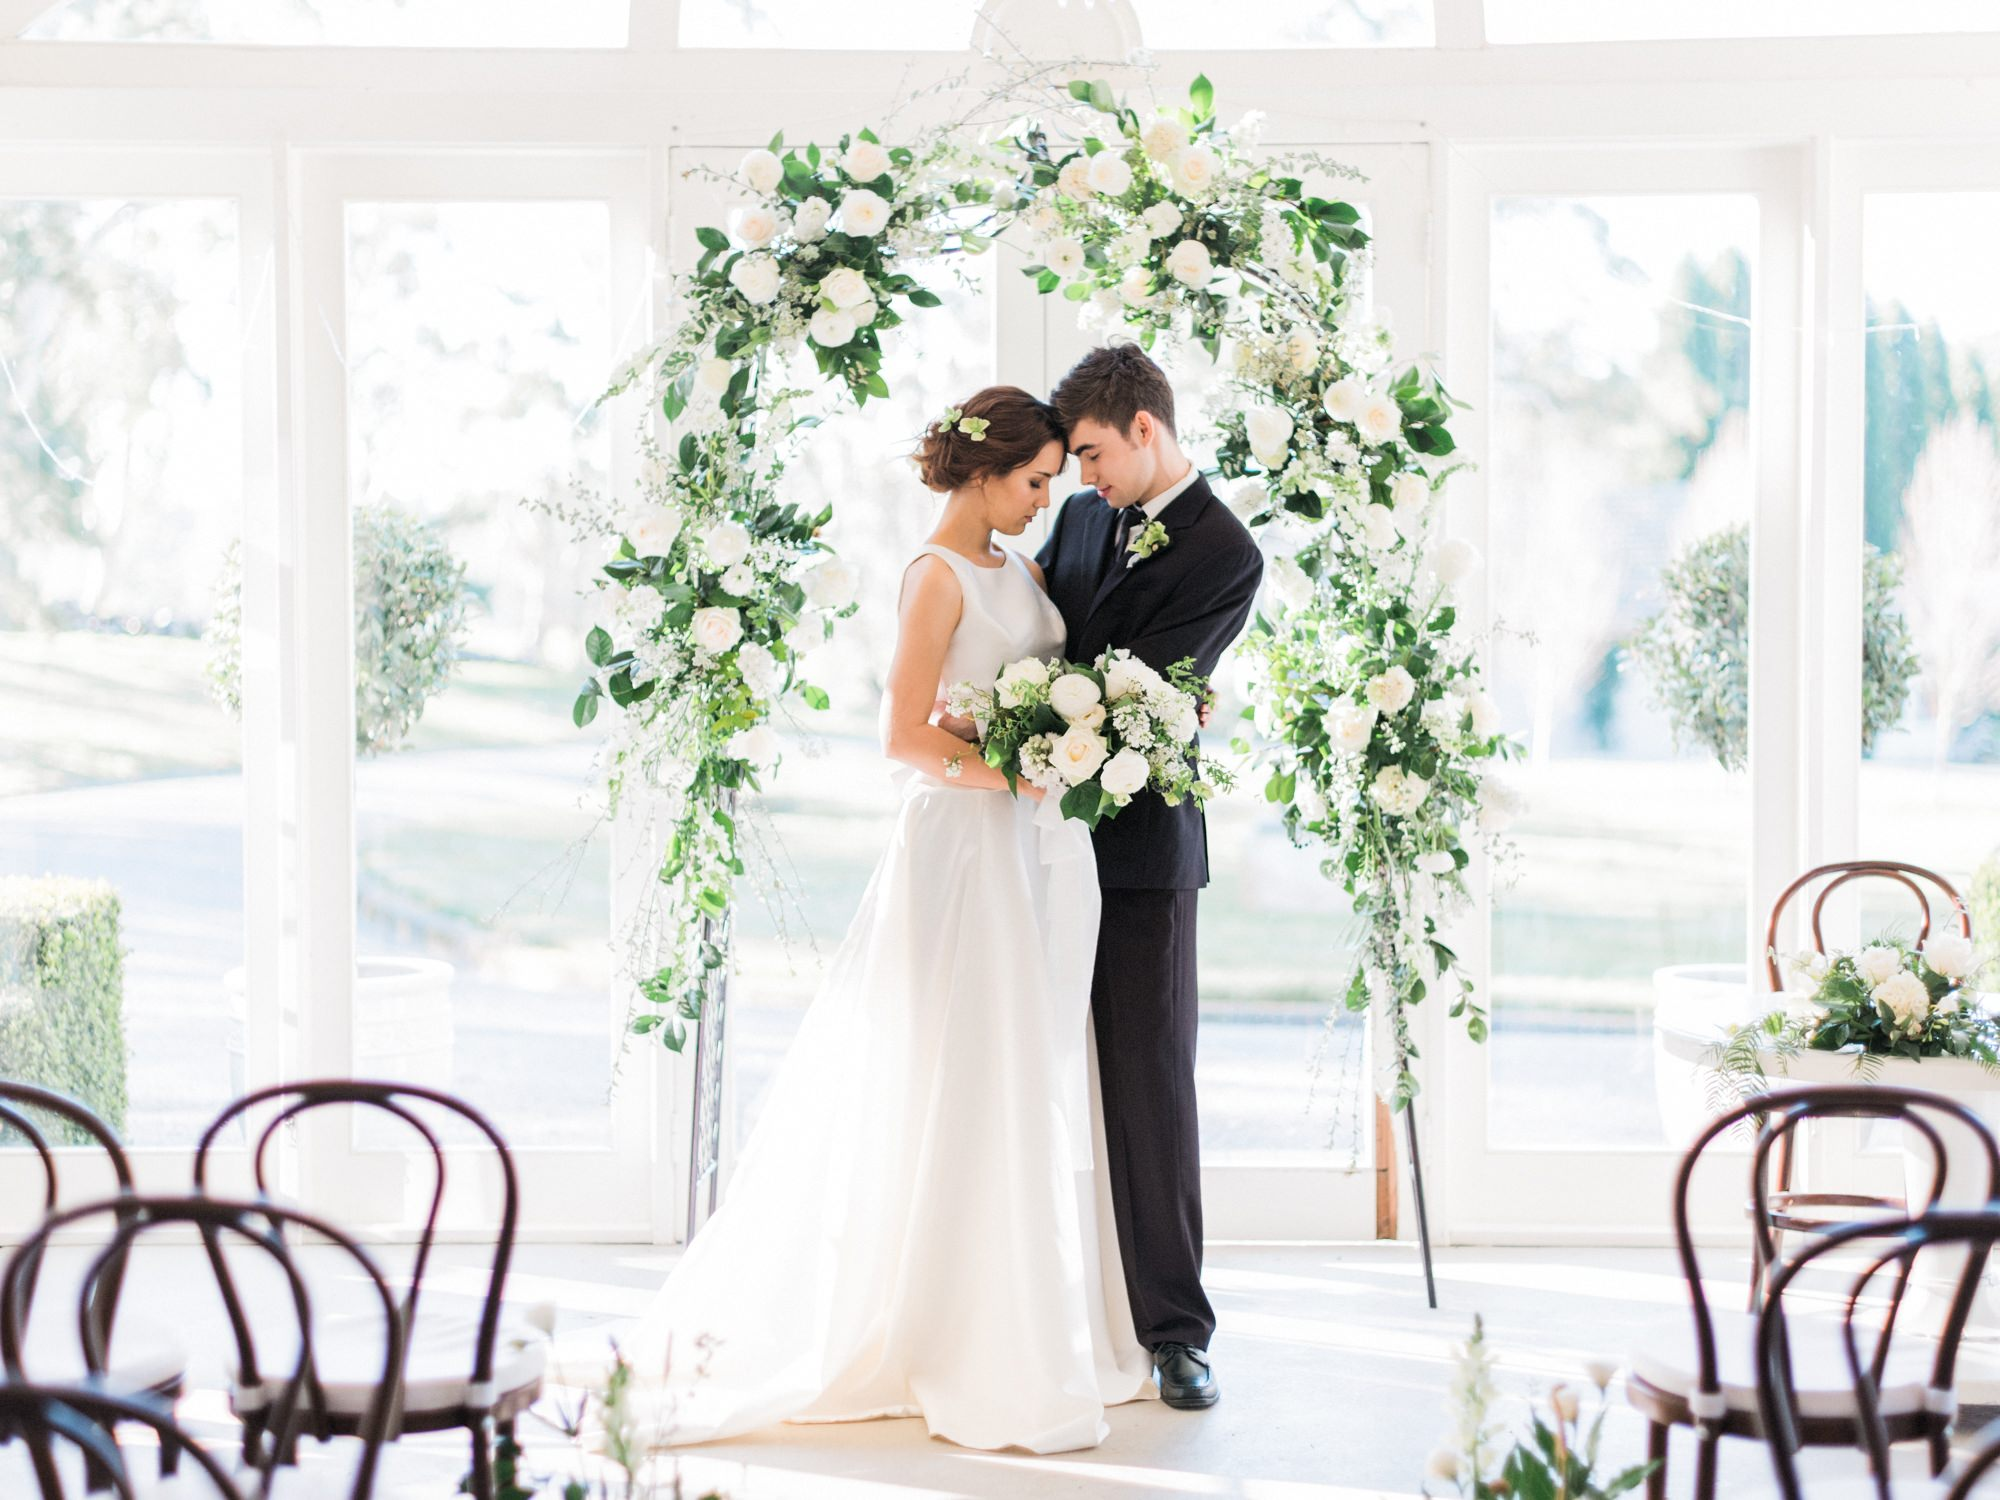 Studio Flora Co - Hopewood House - Rainy Day Weddings Shoot - Pavilion Downstairs Ballroom Ceremony Couple.jpg